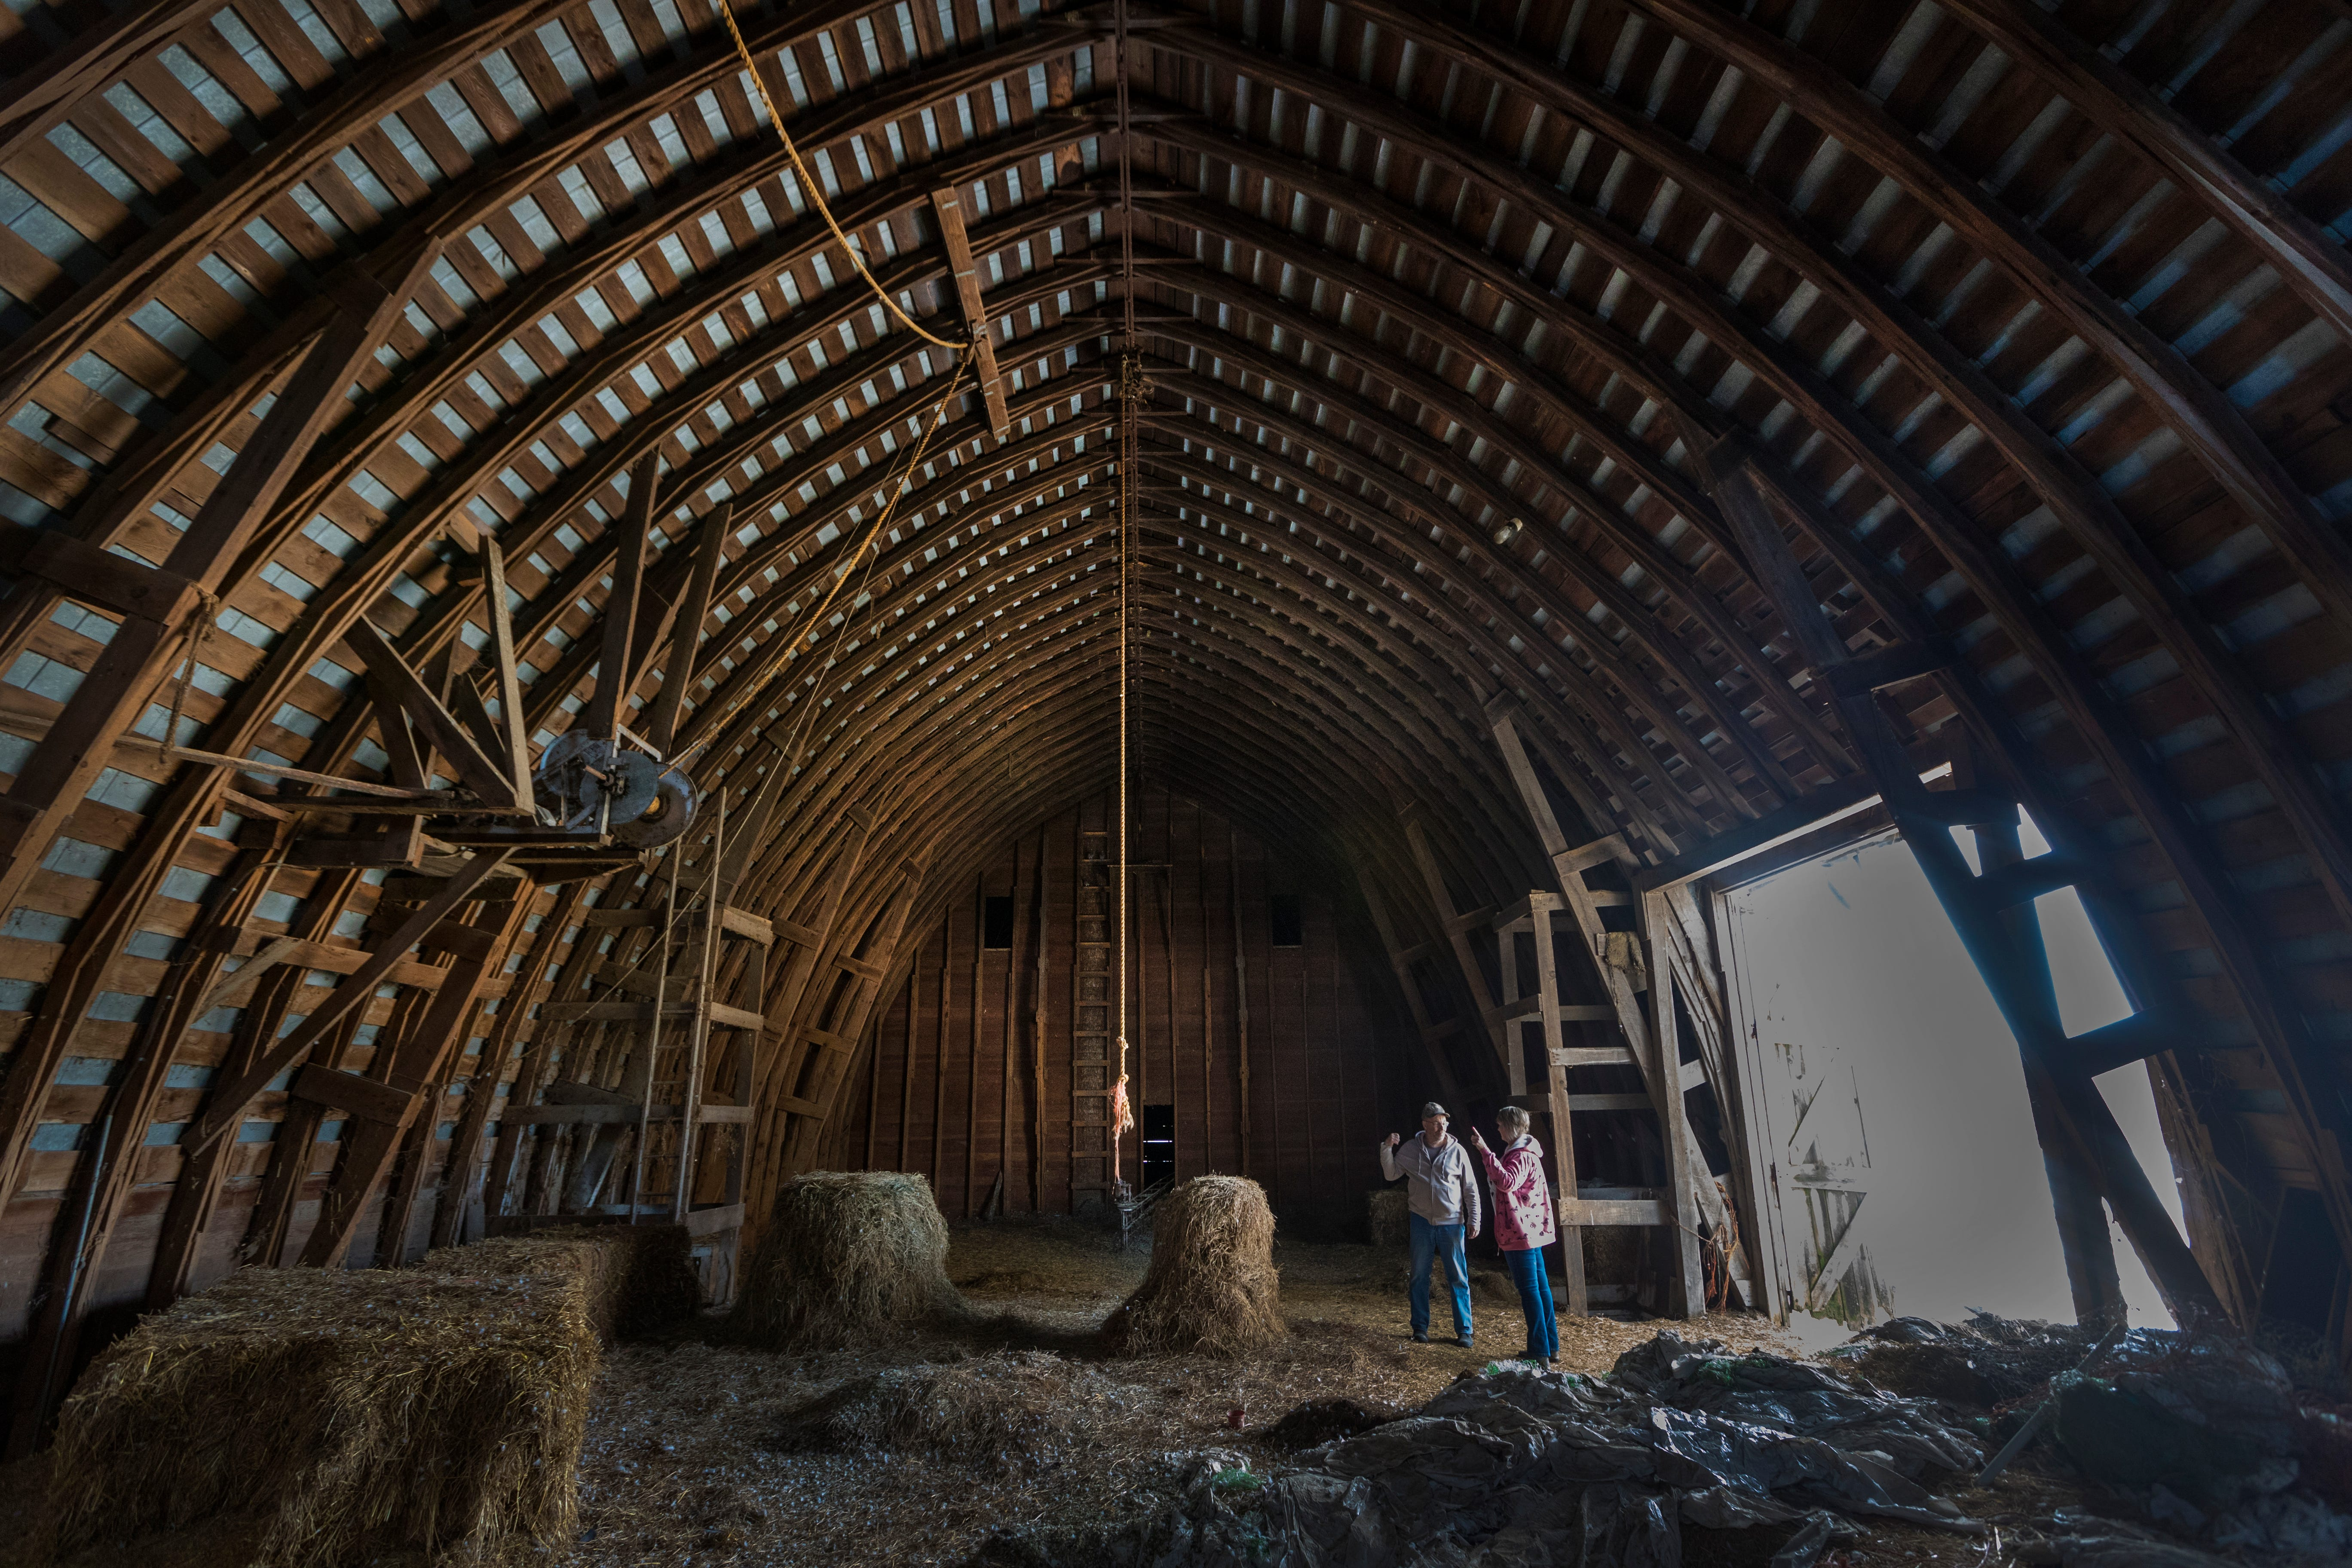 Bruce Drinkman and his companion, Betty Jo Johnson, stand in the hayloft designed to hold about 10,000 bales of hay at the farm in Ridgeland. Drinkman, a former dairy farmer, purchased this small farm in Dunn County.